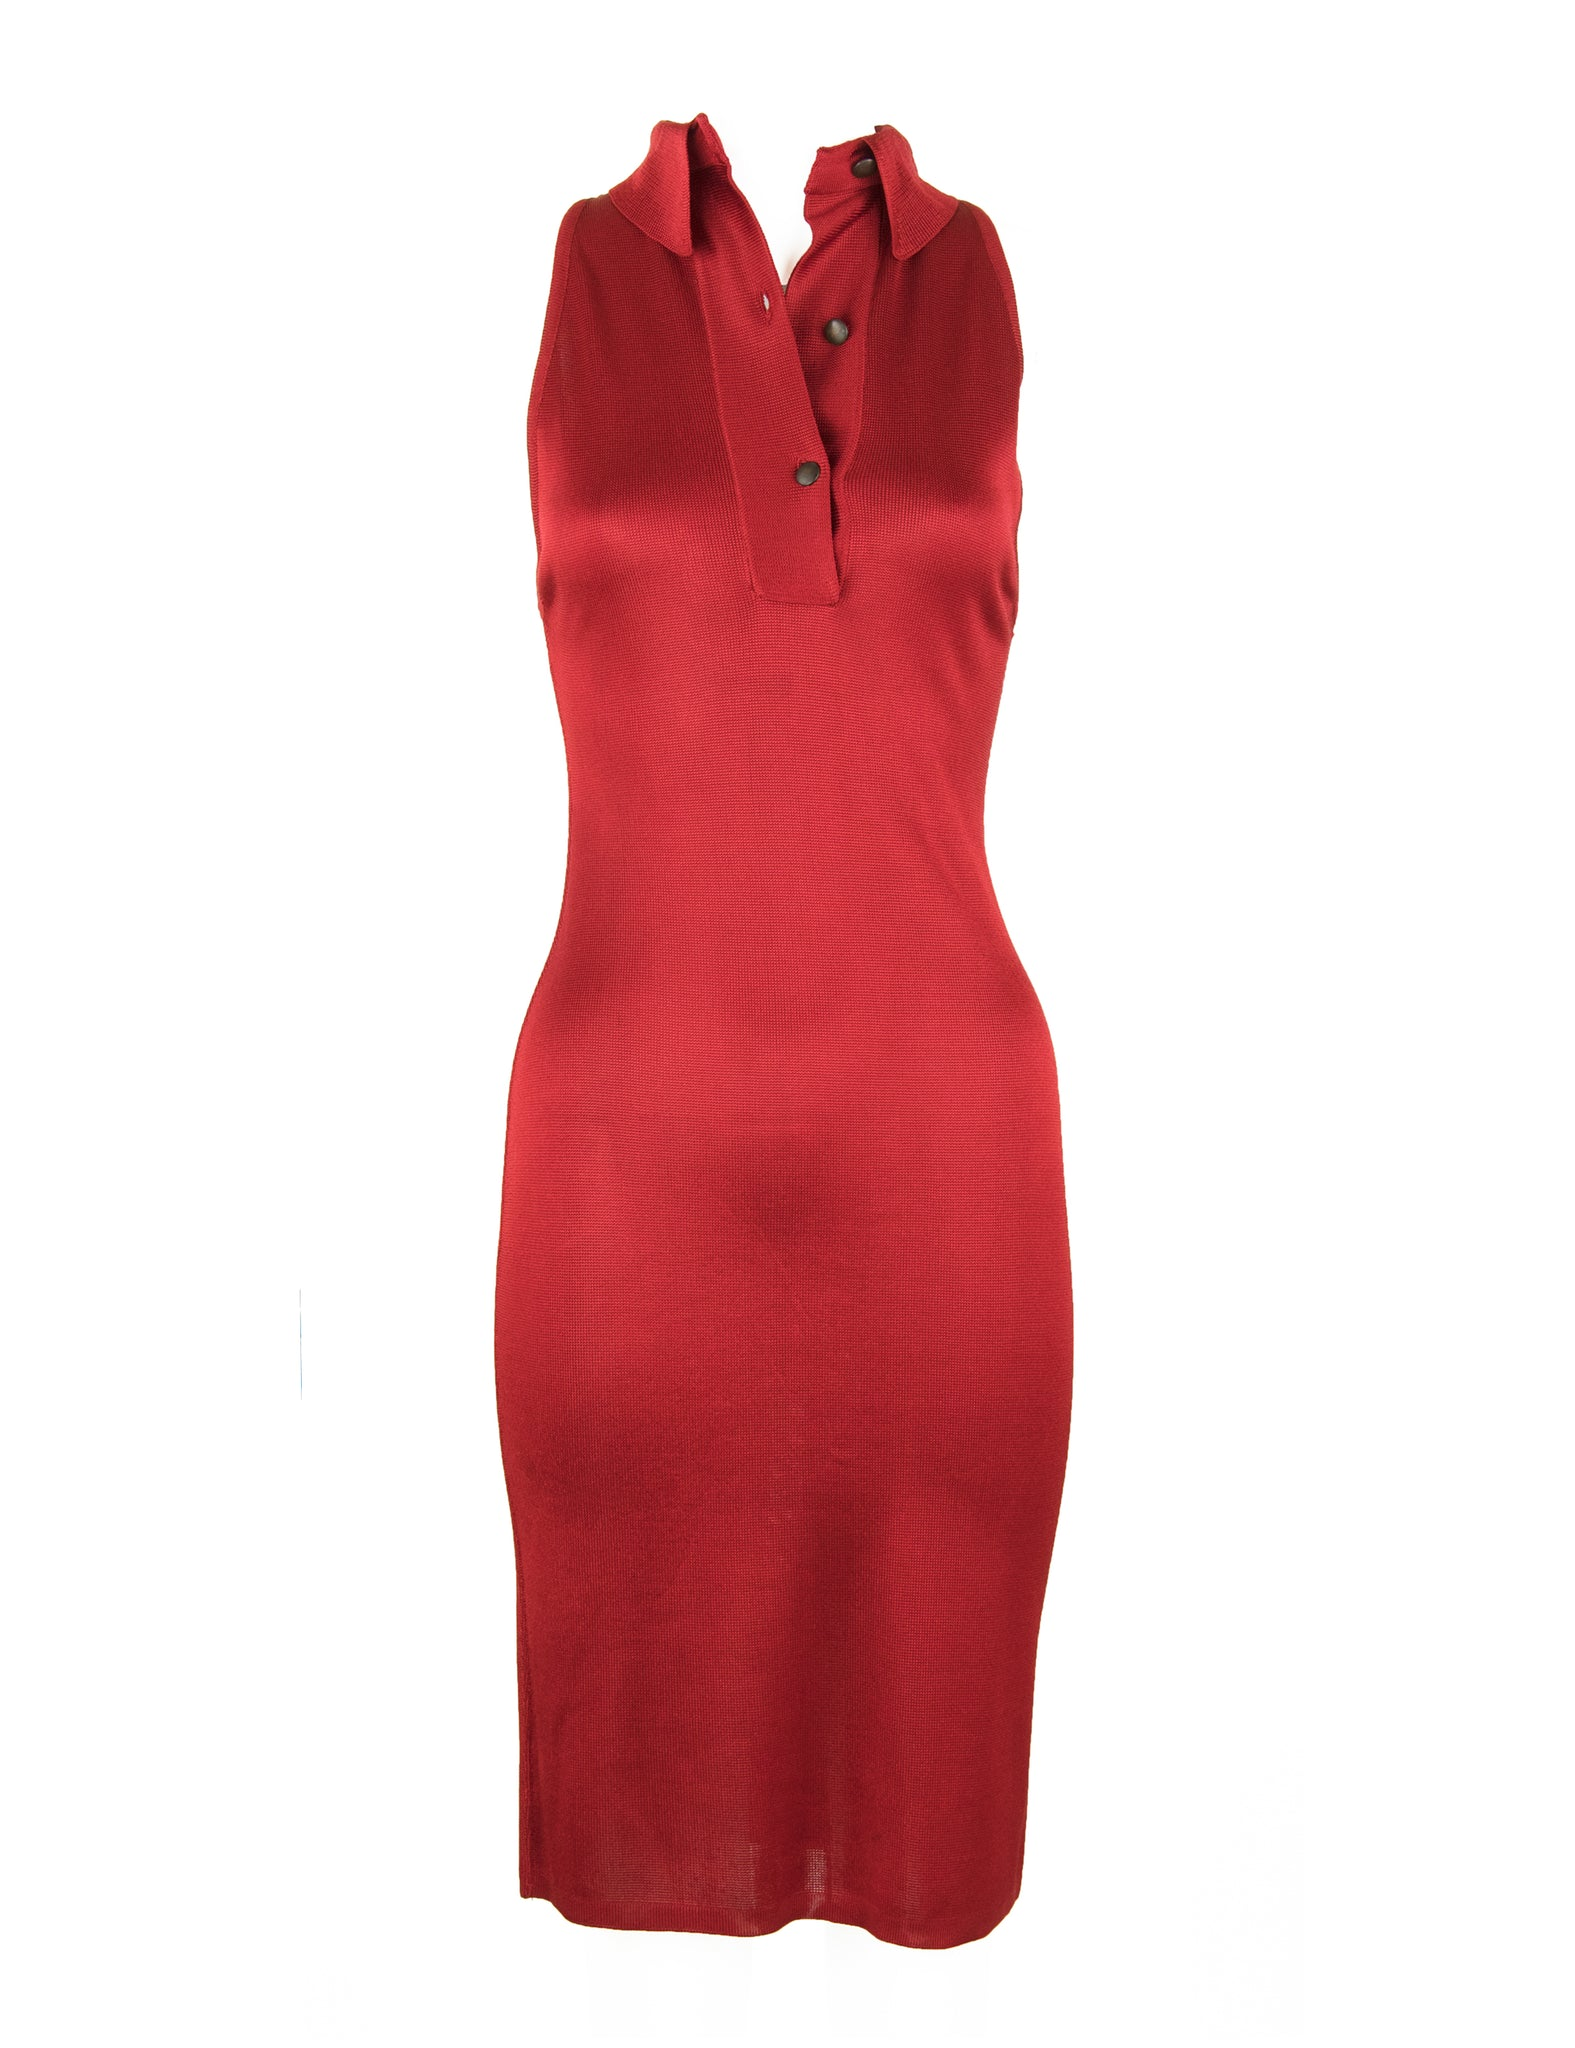 Vintage Alaia Red Dress